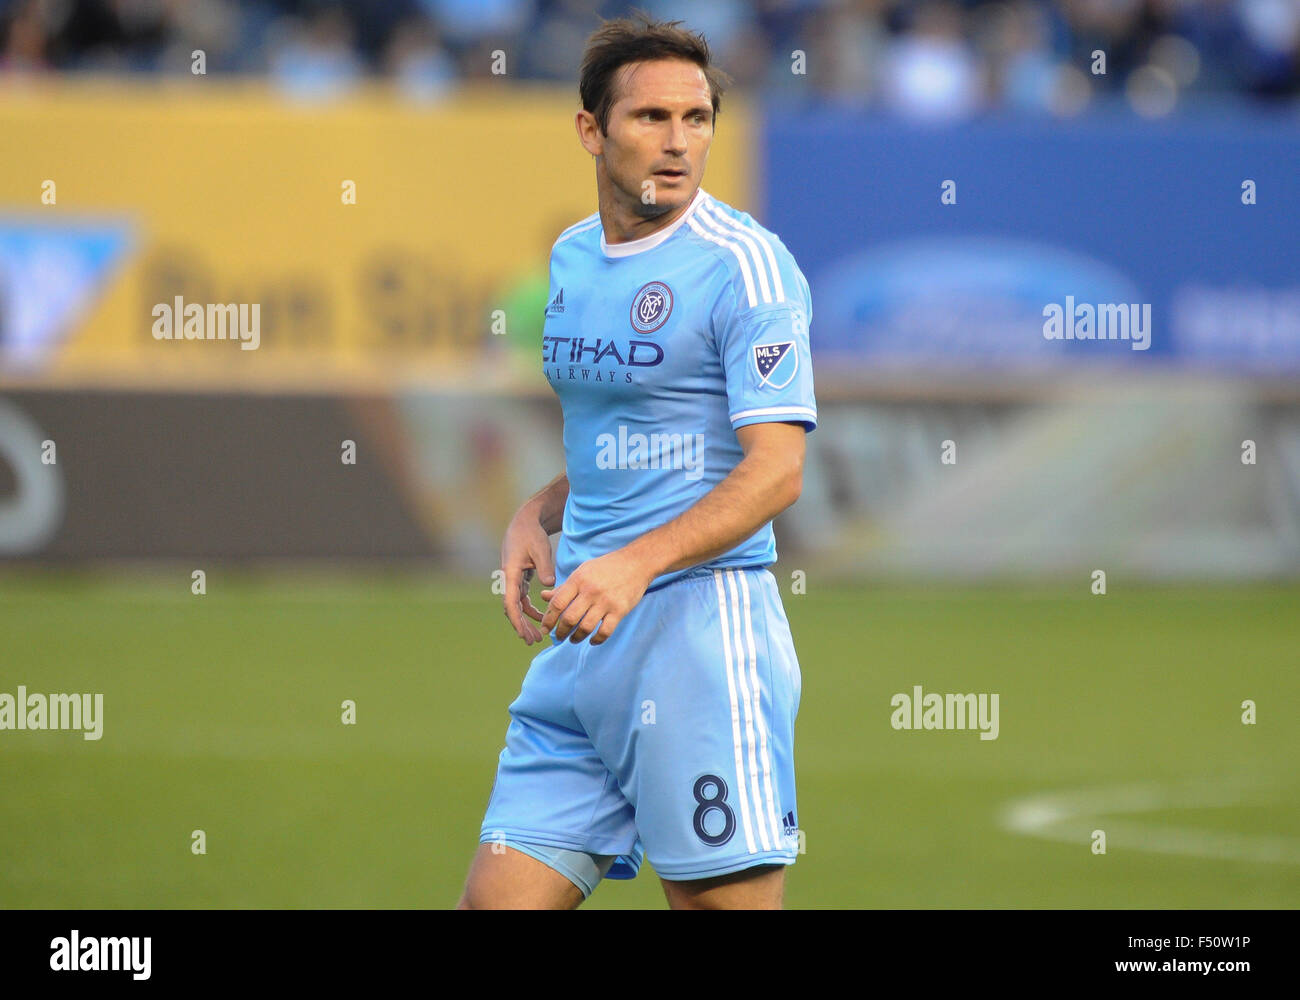 Bronx, New York, USA. 25th Oct, 2015. Frank Lampard (8) of NYCFC in action during a match against New England Revolution - Stock Image